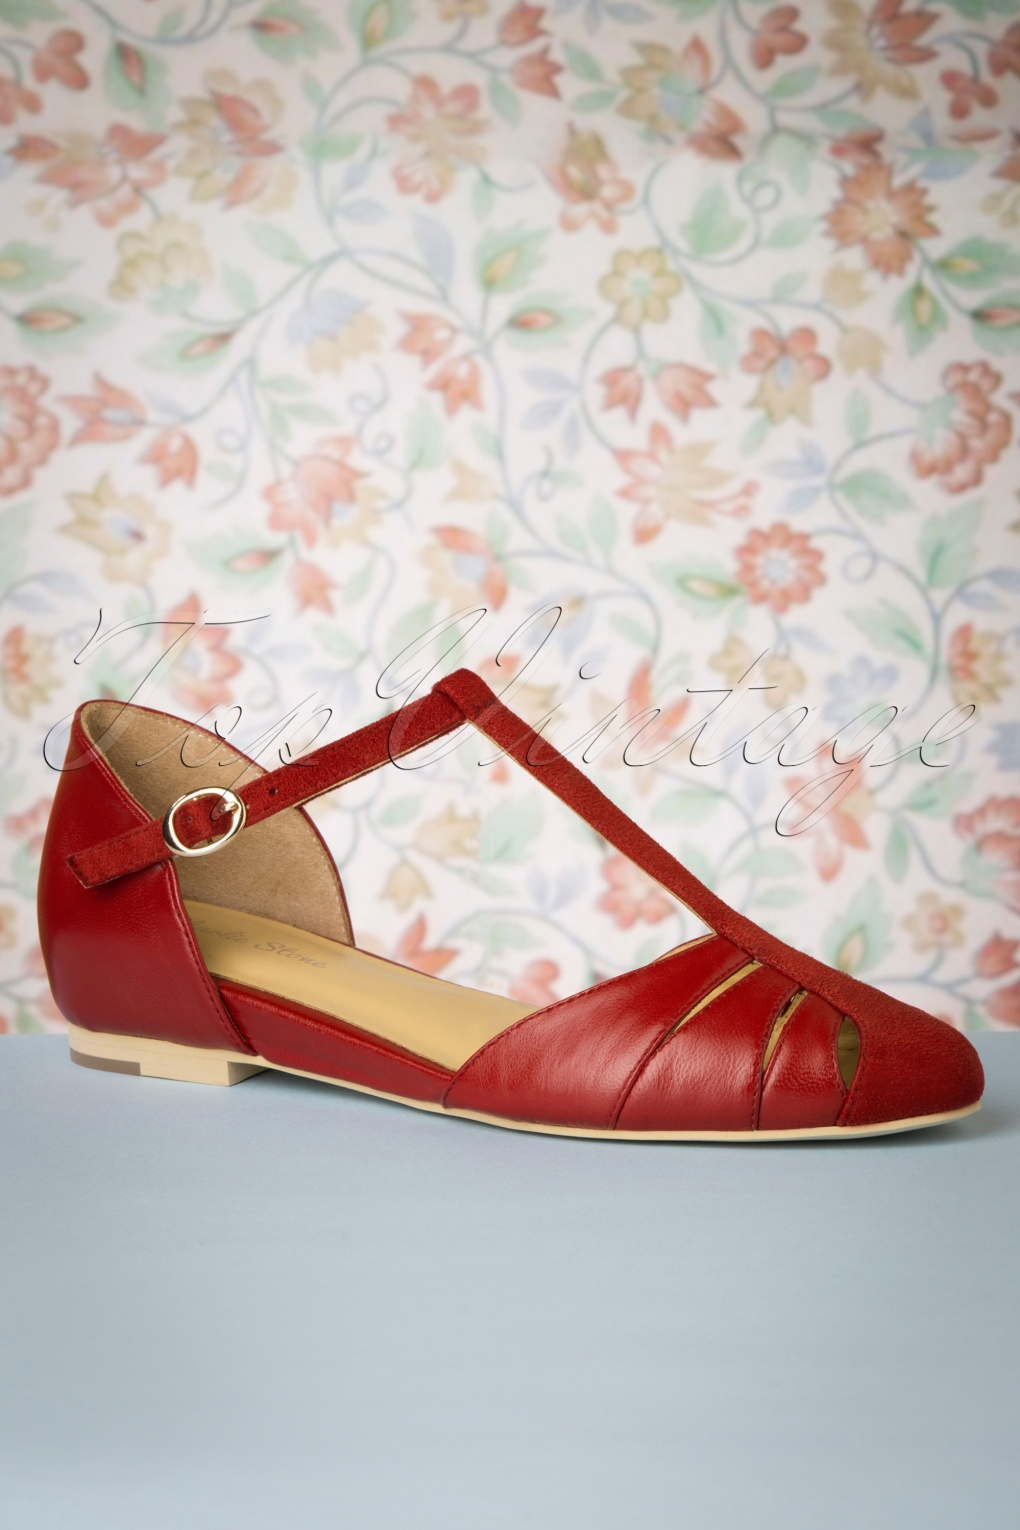 Women's Vintage Shoes & Boots to Buy 50s Toscana T-Strap Flats in Red £107.37 AT vintagedancer.com